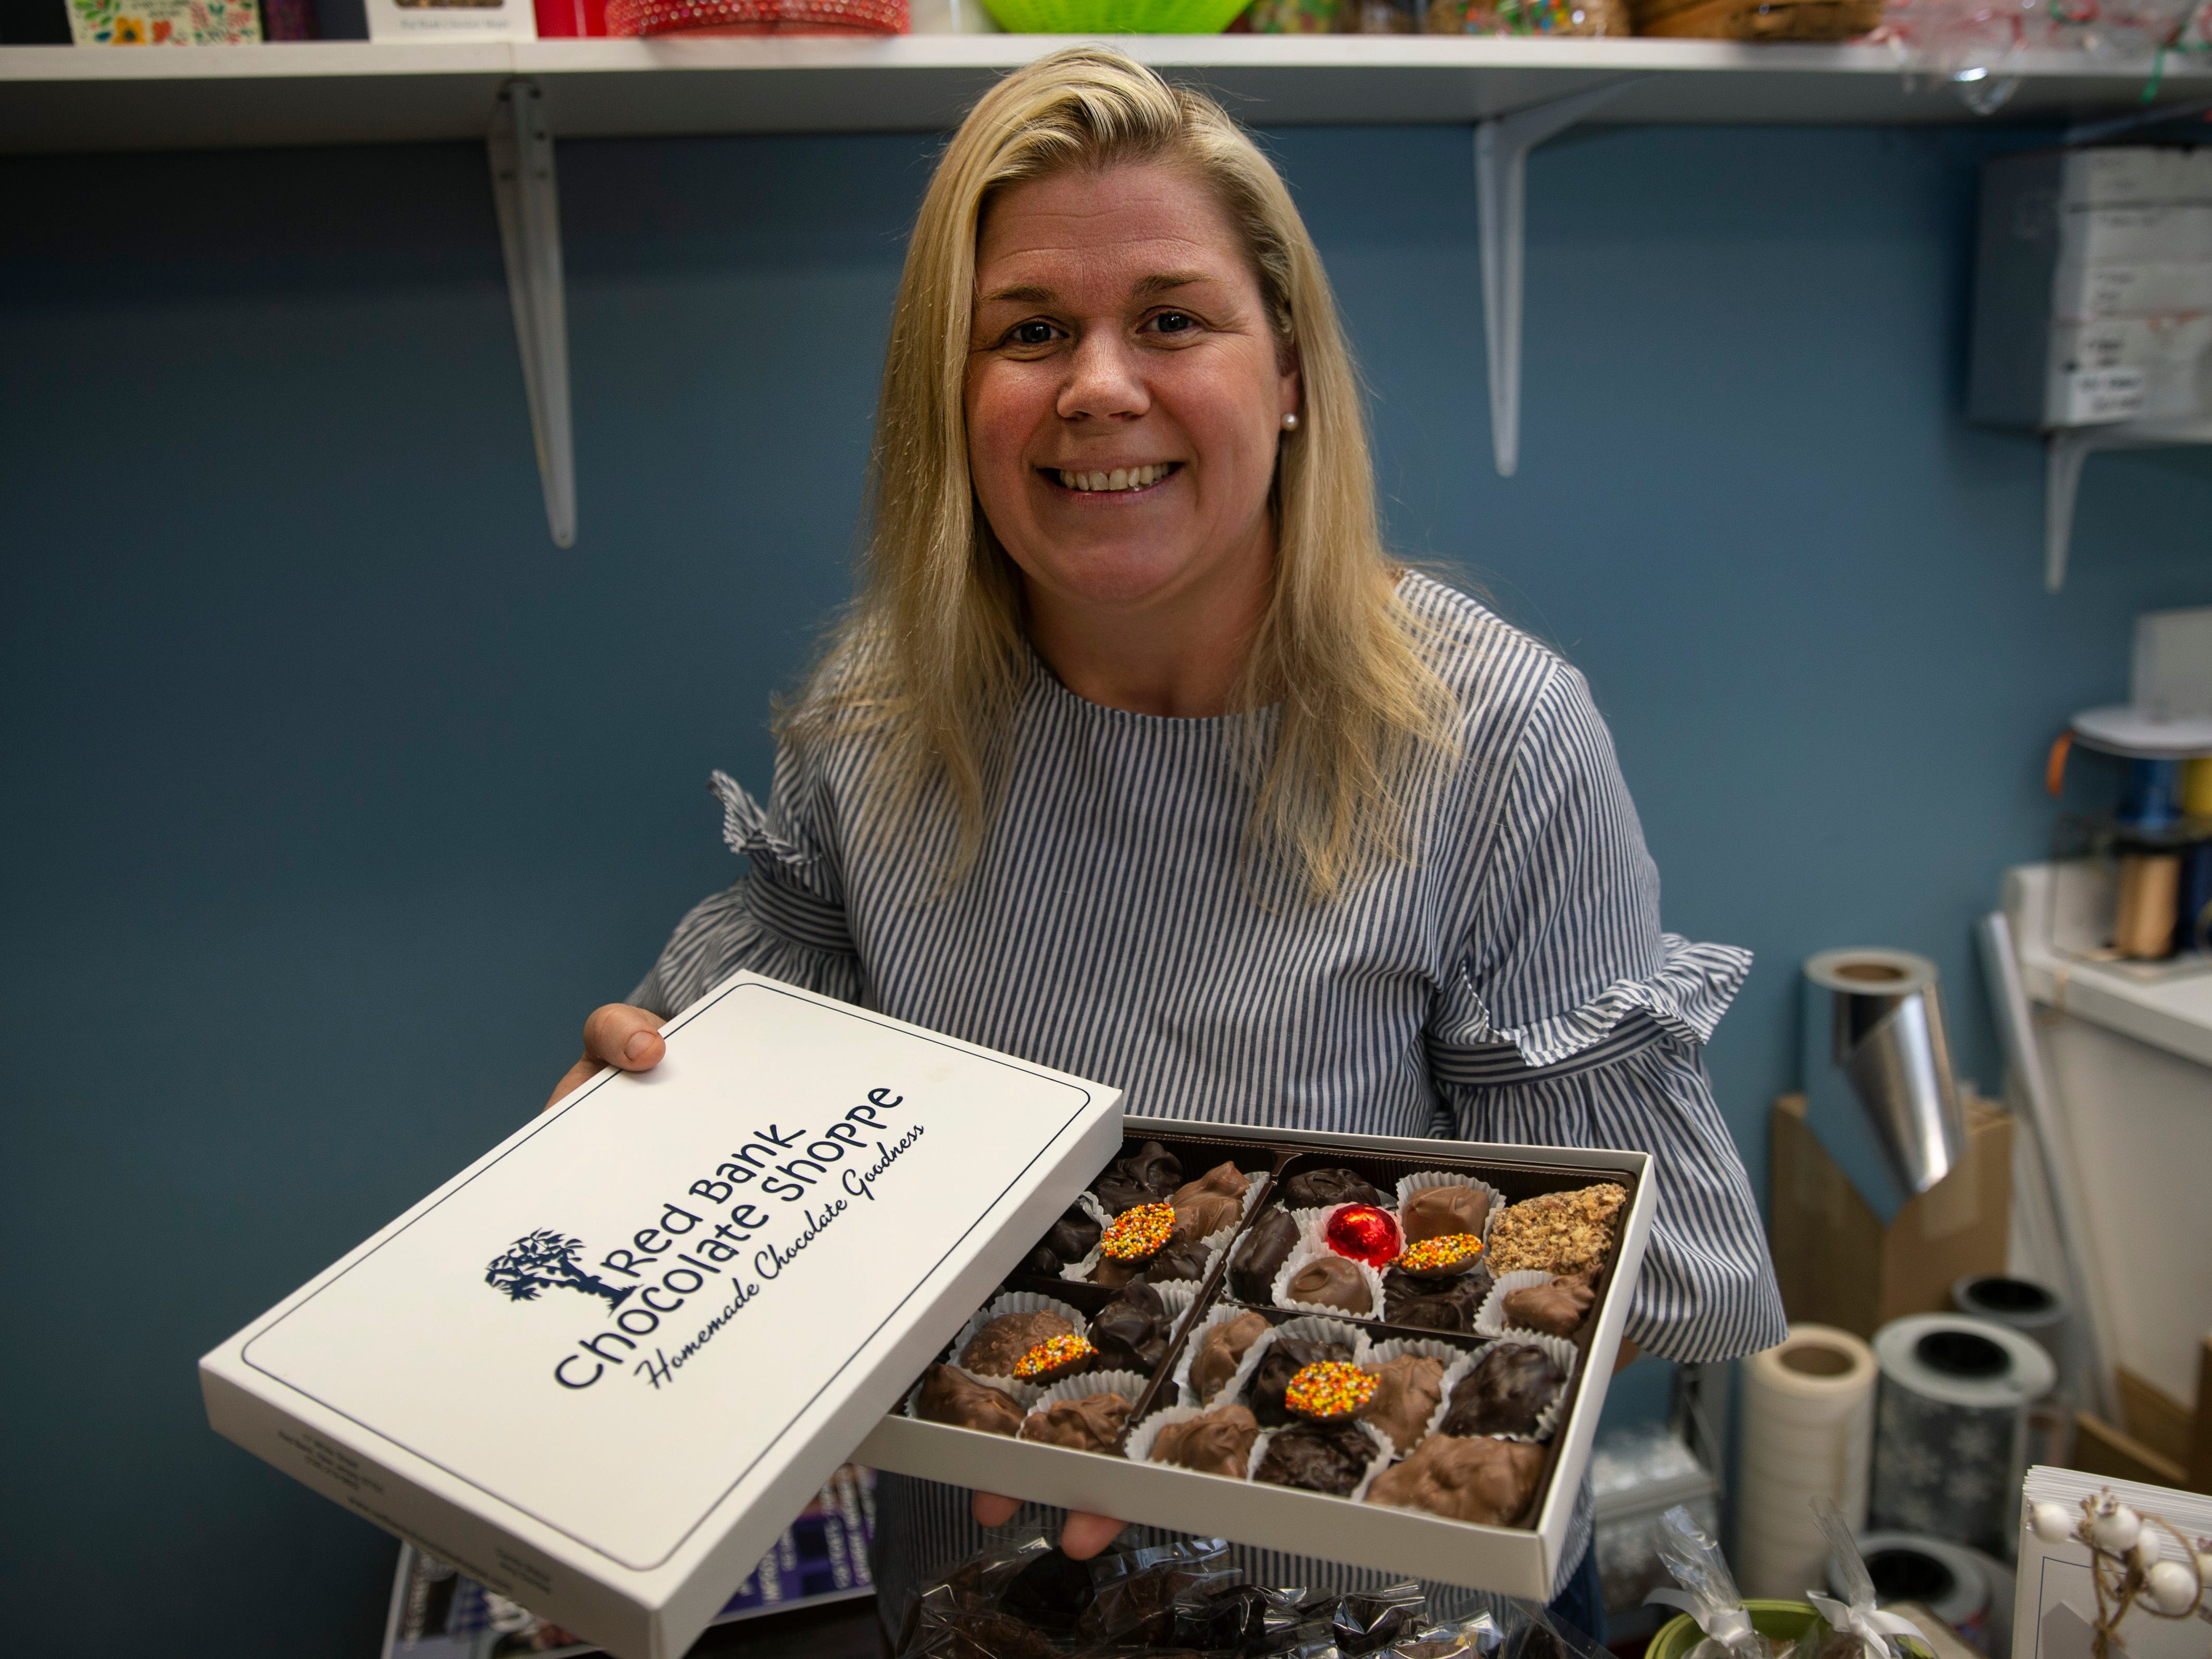 Amy Berry Healy with one of the boxes of assorted chocolates she sells at the Red Bank Chocolate Shoppe.